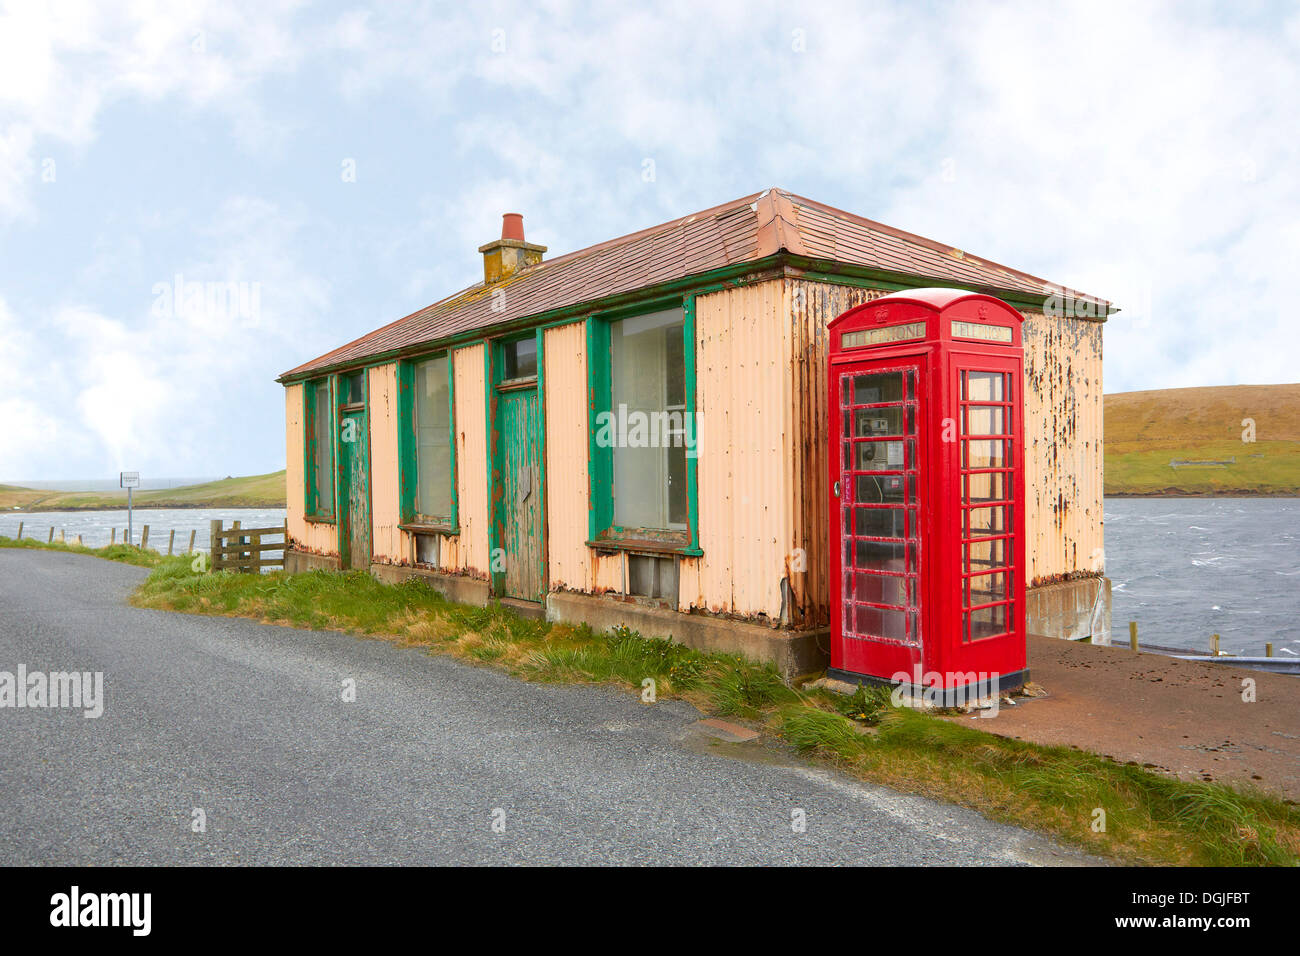 Disused shop with phone box. - Stock Image